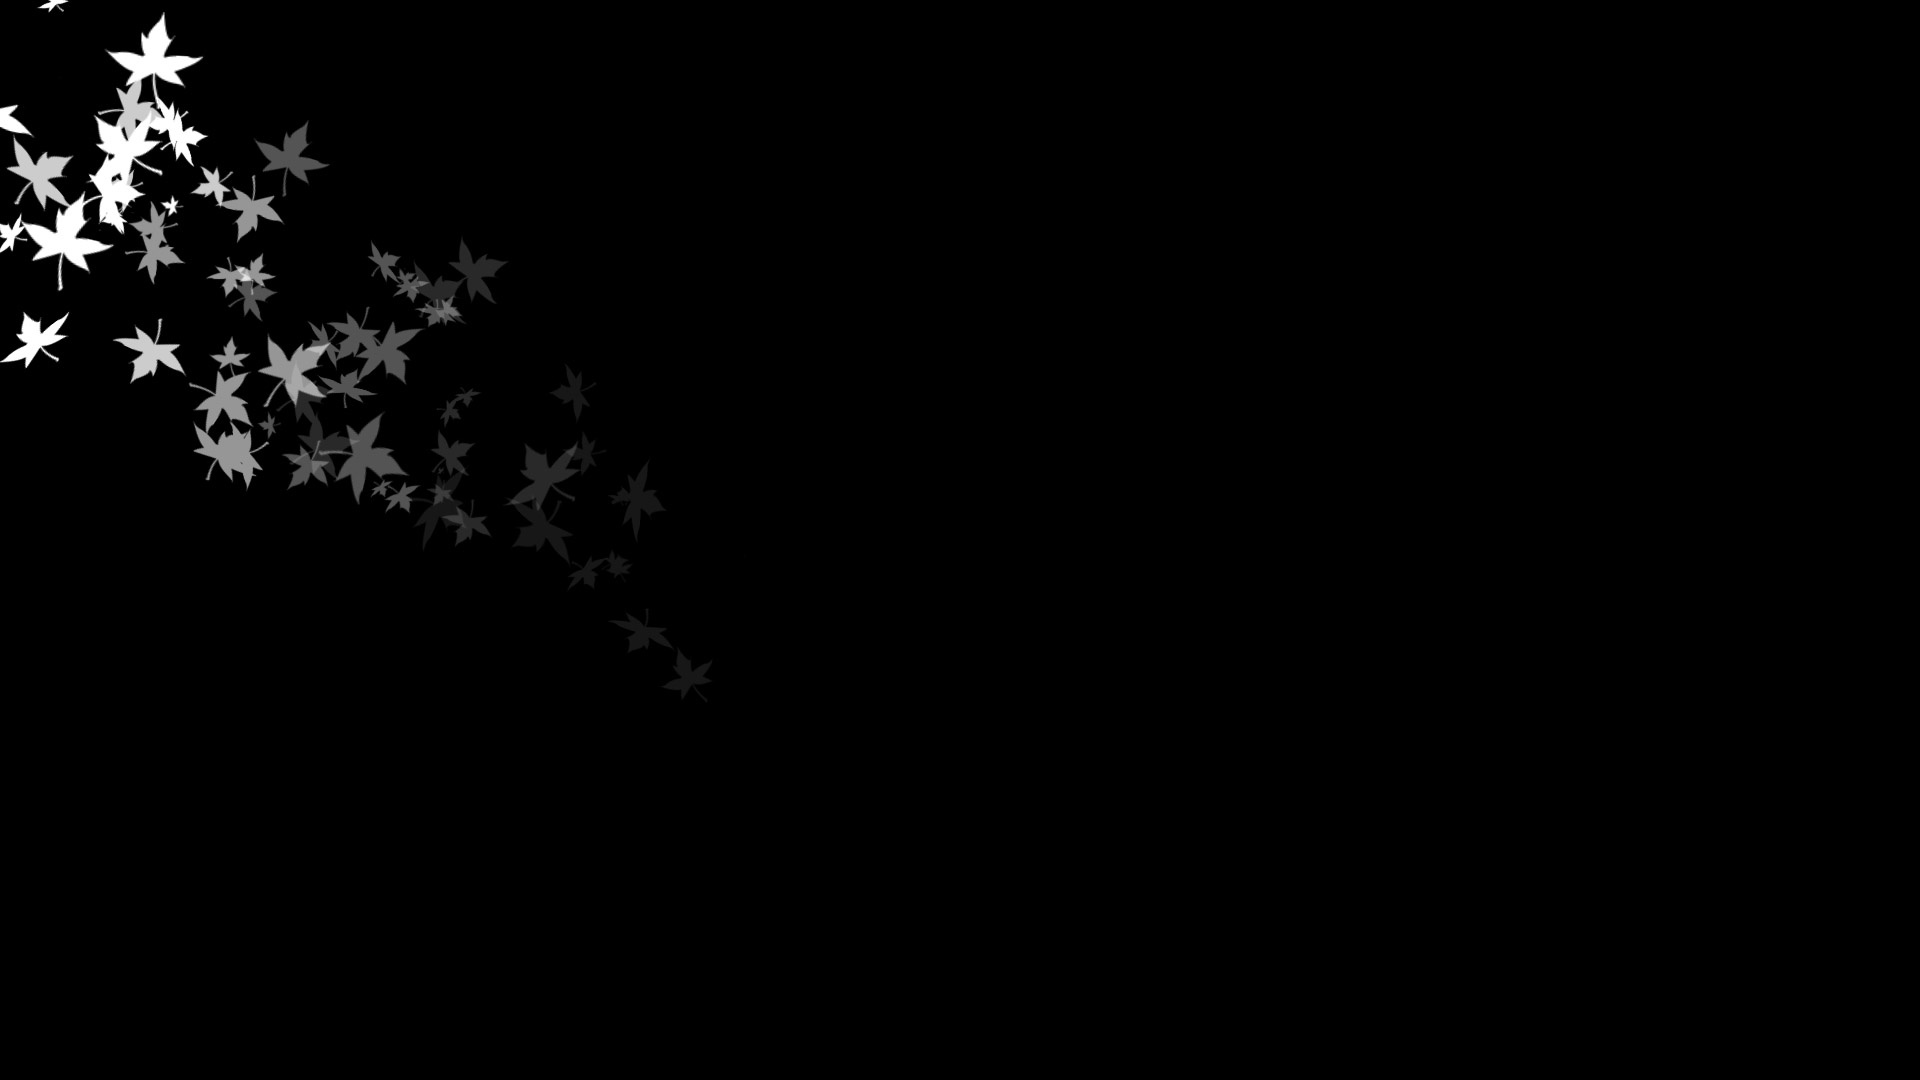 black wallpapers 4 1920x1080